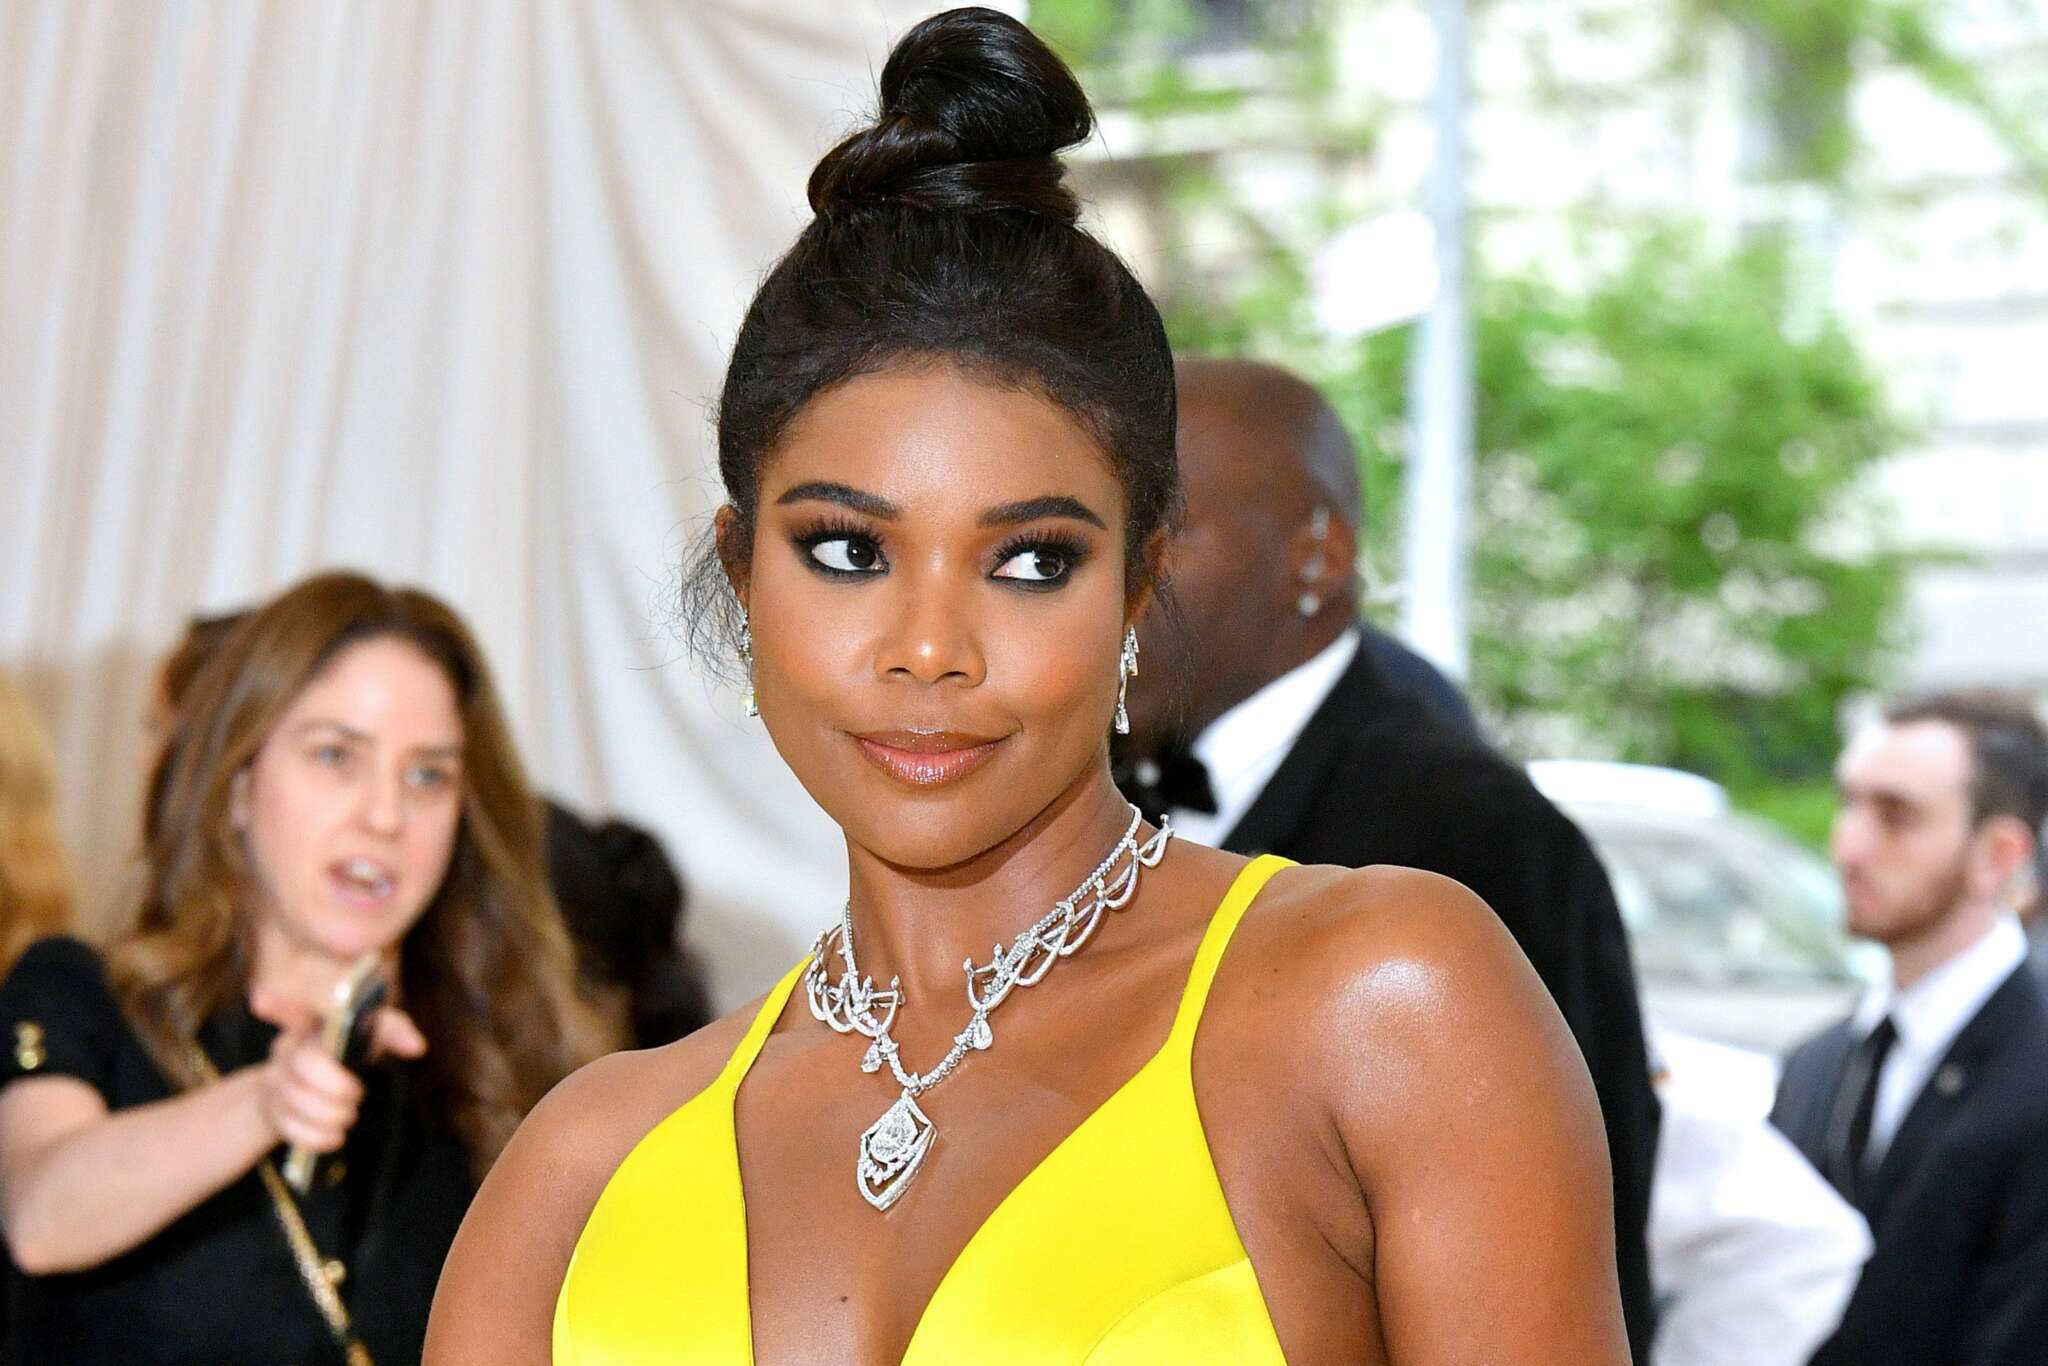 Gabrielle Union Shares A Hot Outfit On Social Media And Fans Are Here For It